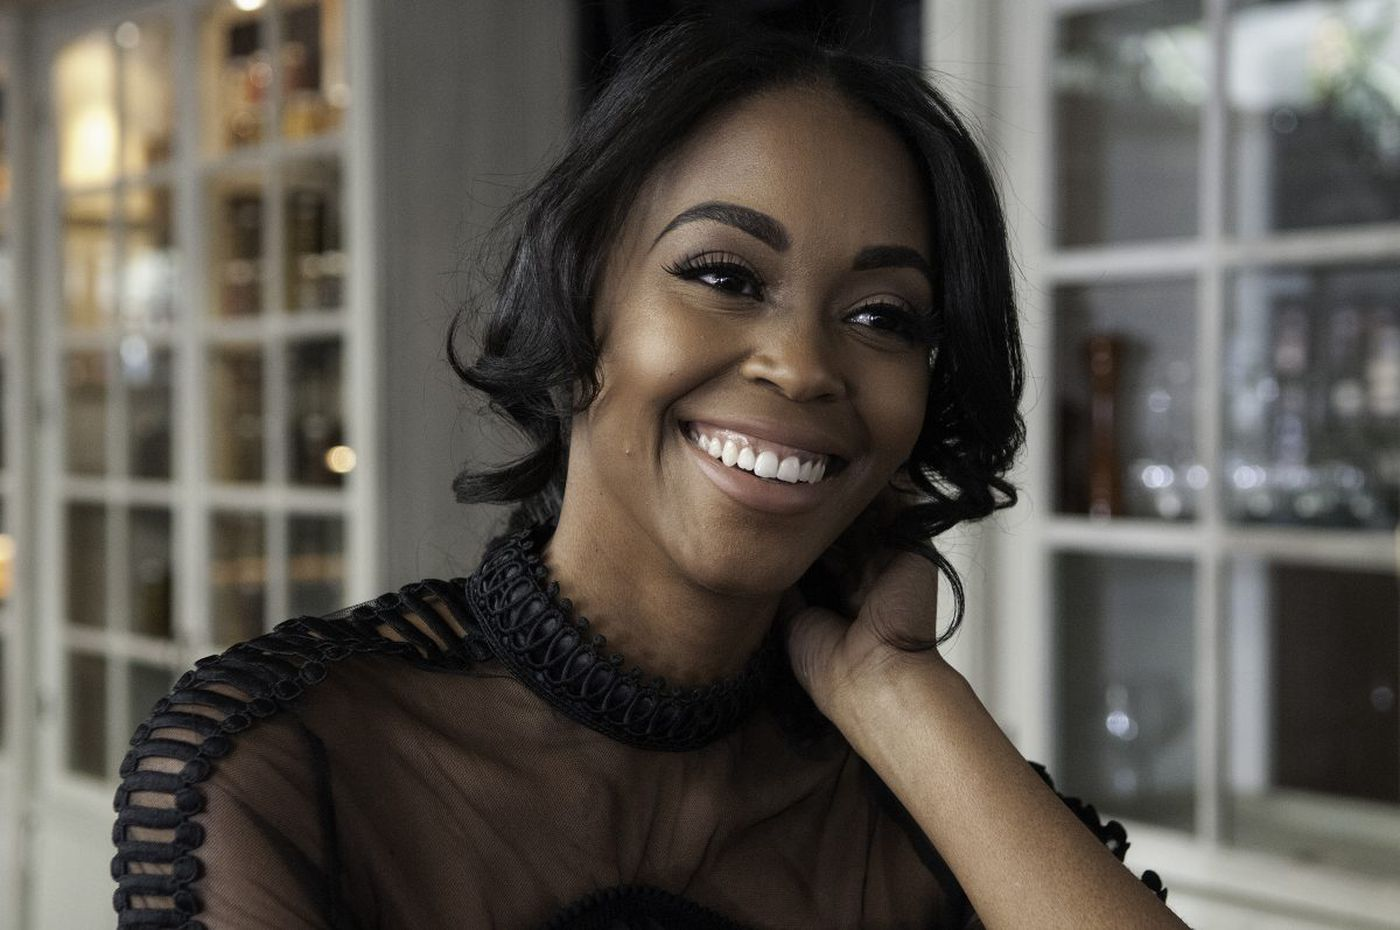 West Philly's 'Black Lightning' star Nafessa Williams blazes TV trail with her character